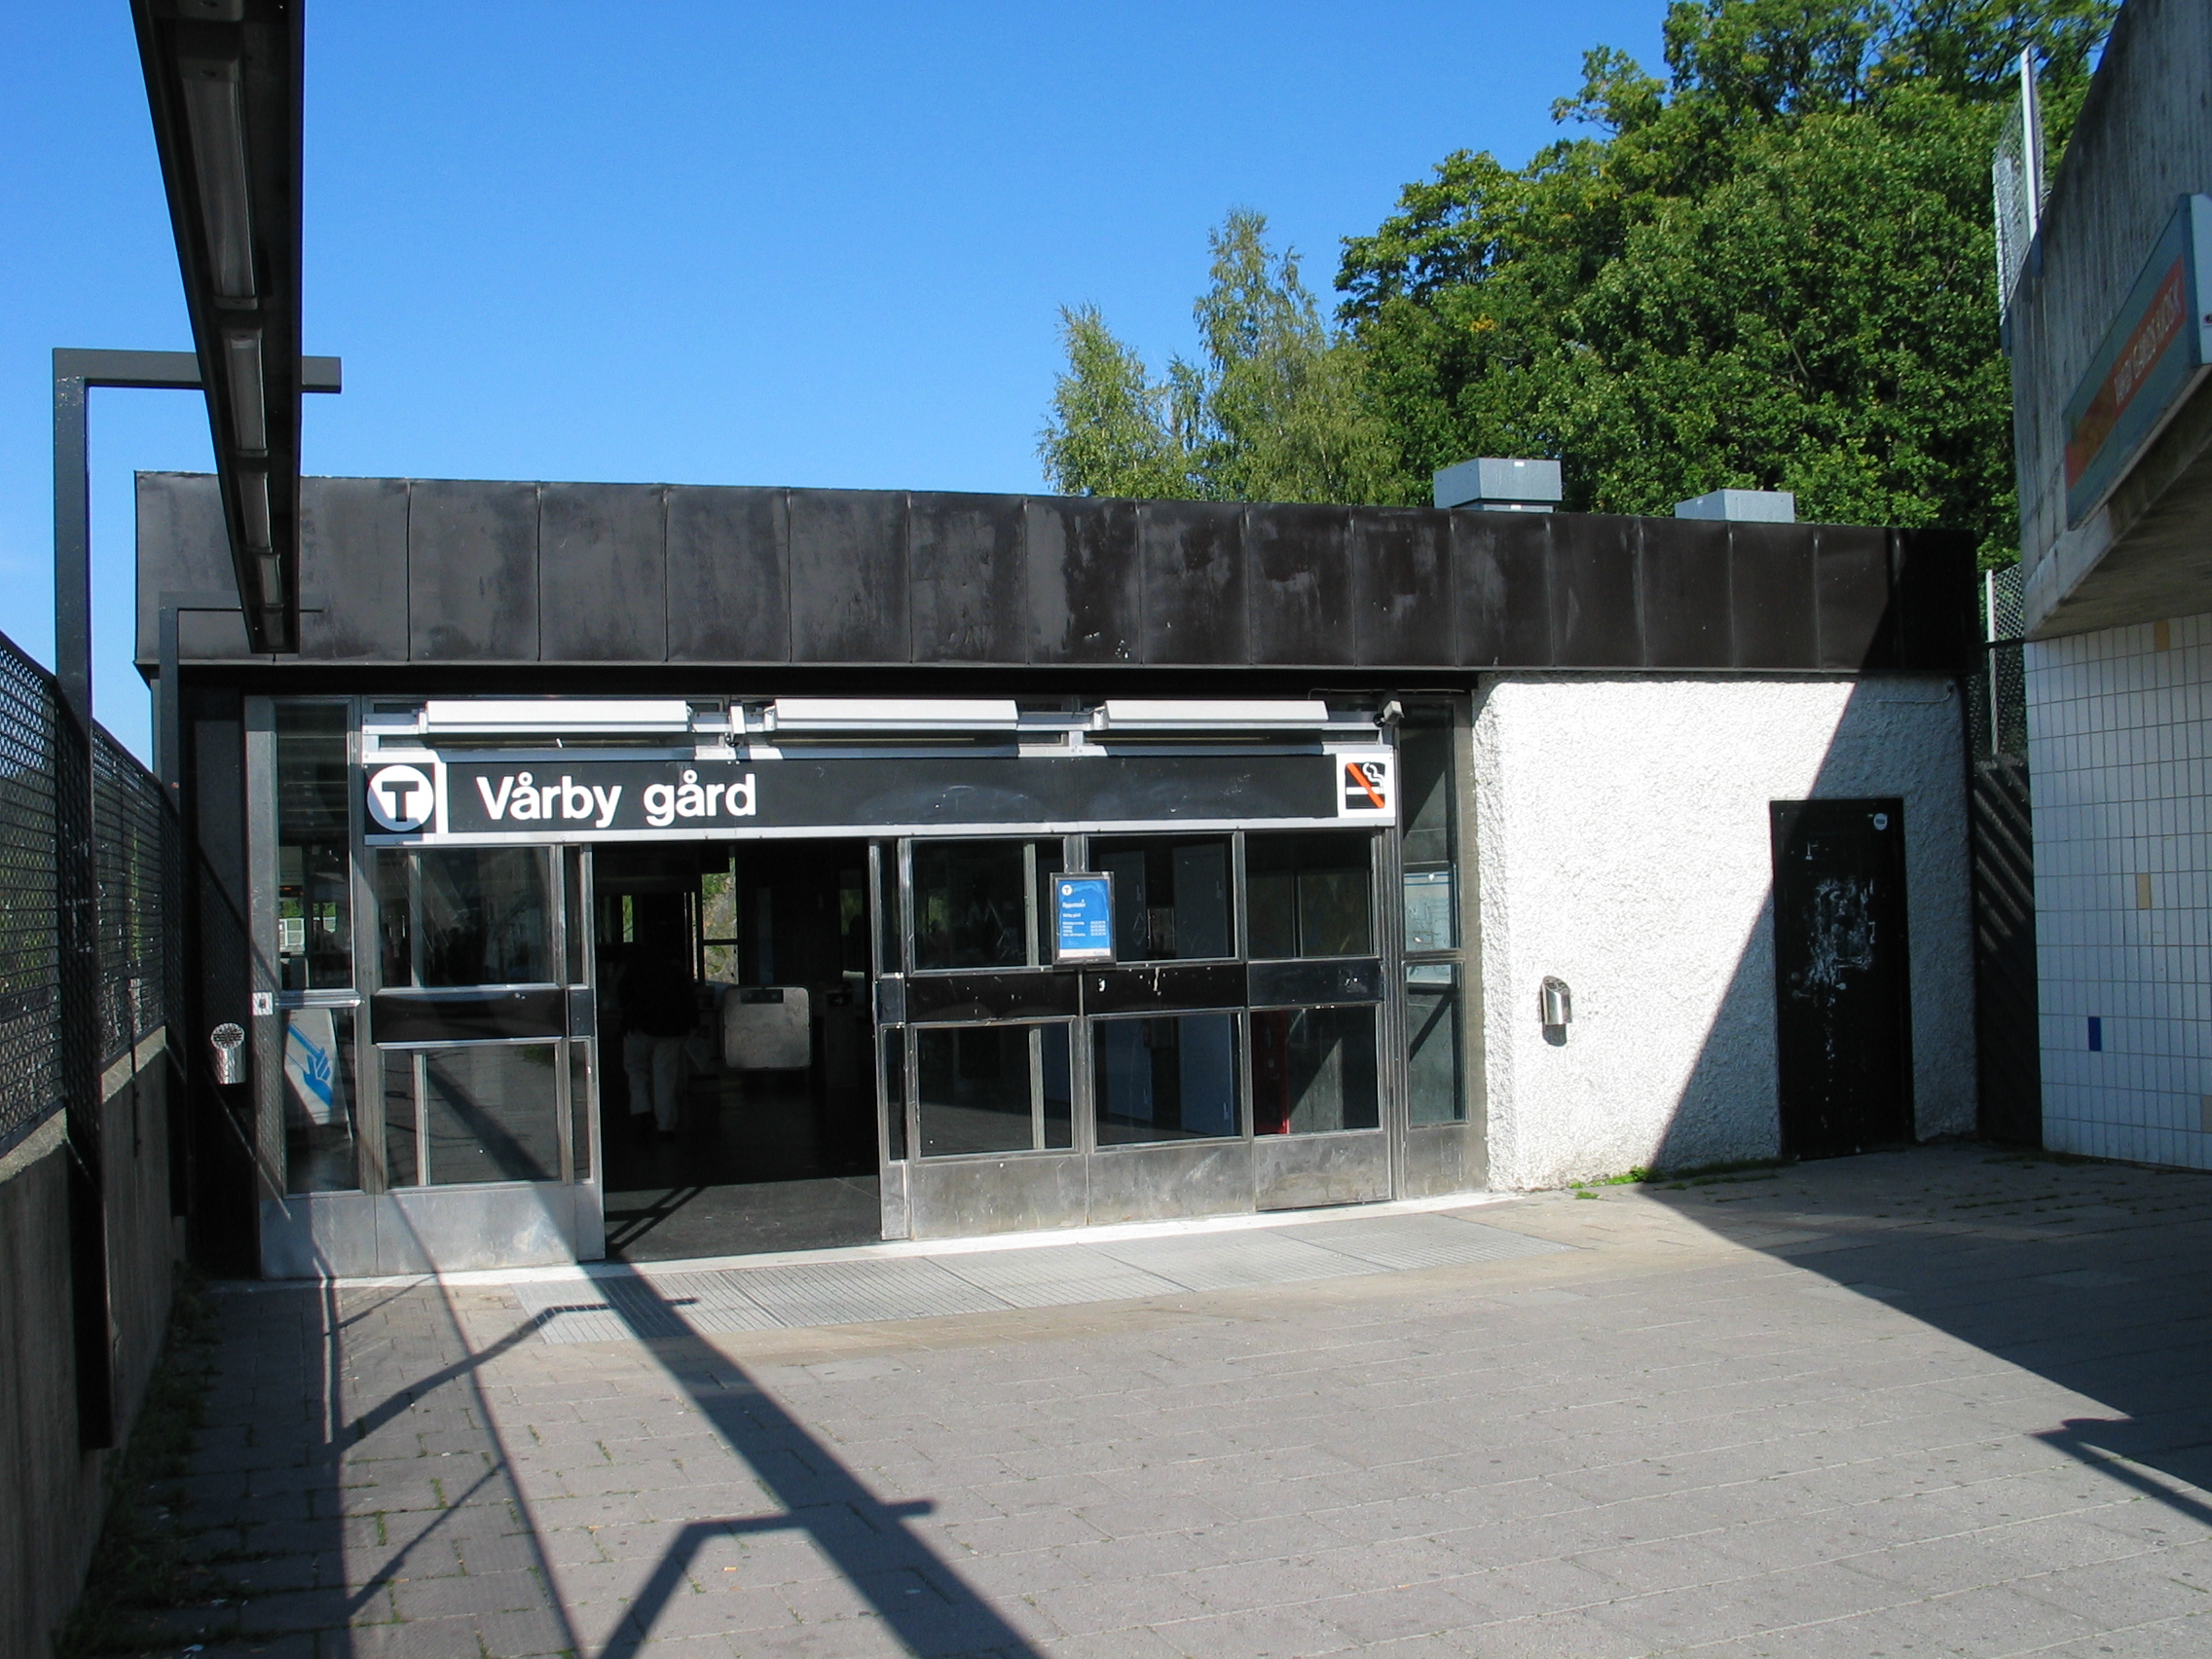 Vrby grd (tunnelbanestation) - Wikiwand